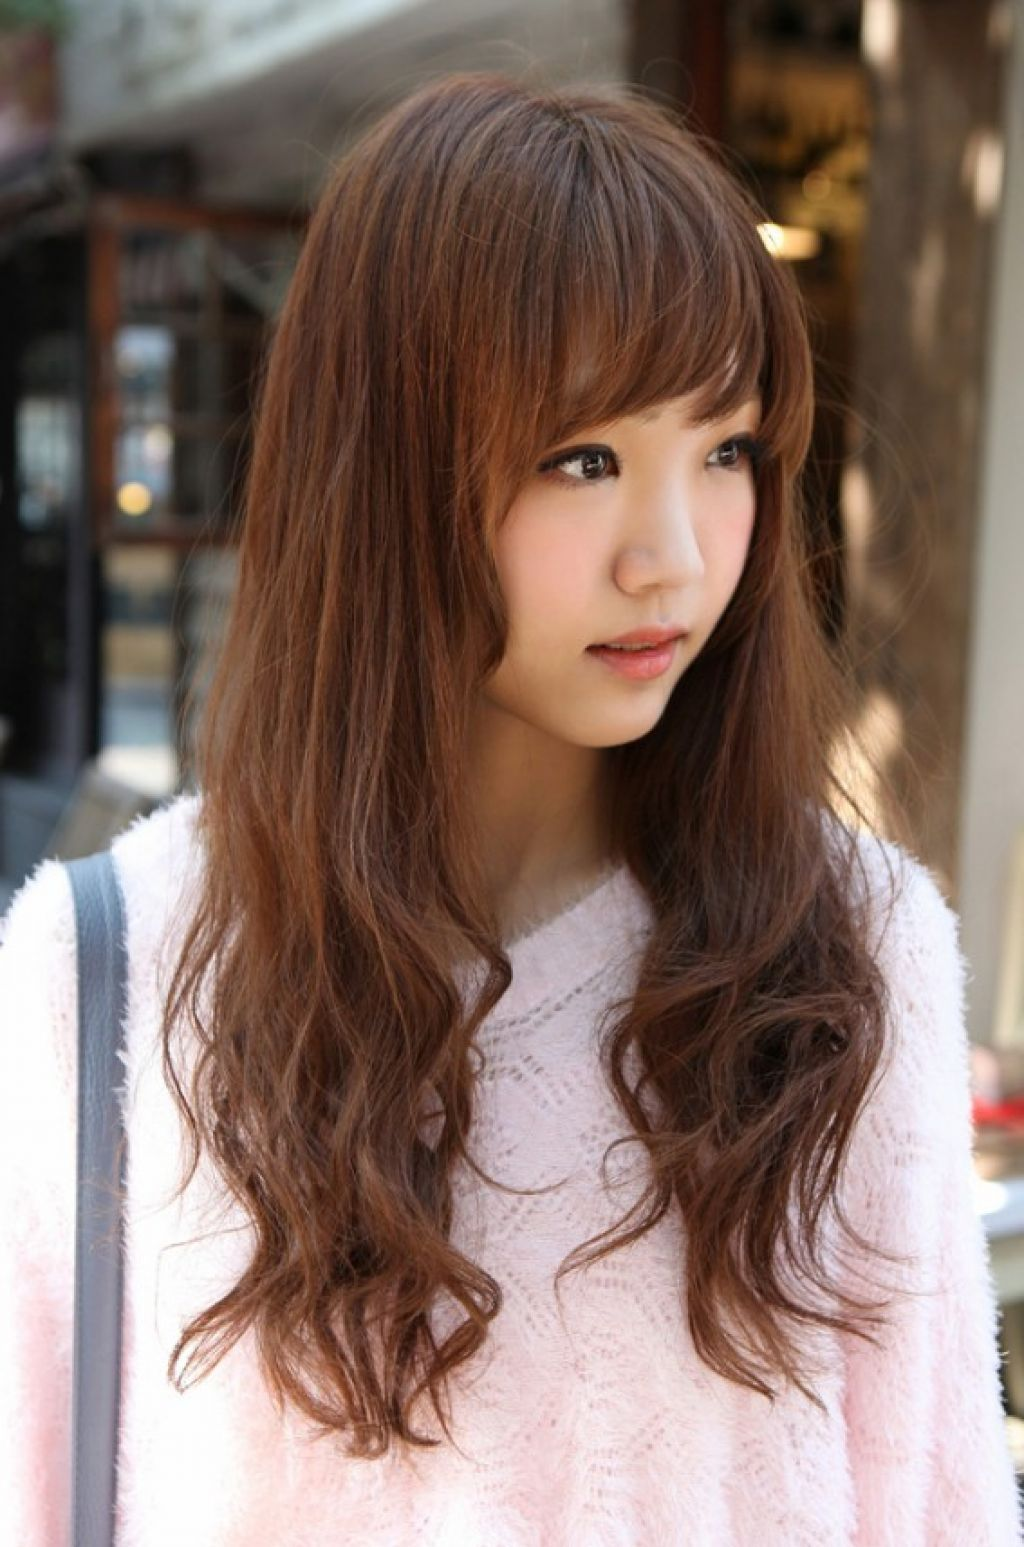 korean hairstyle for girl other hairstyles sweet hairstyle